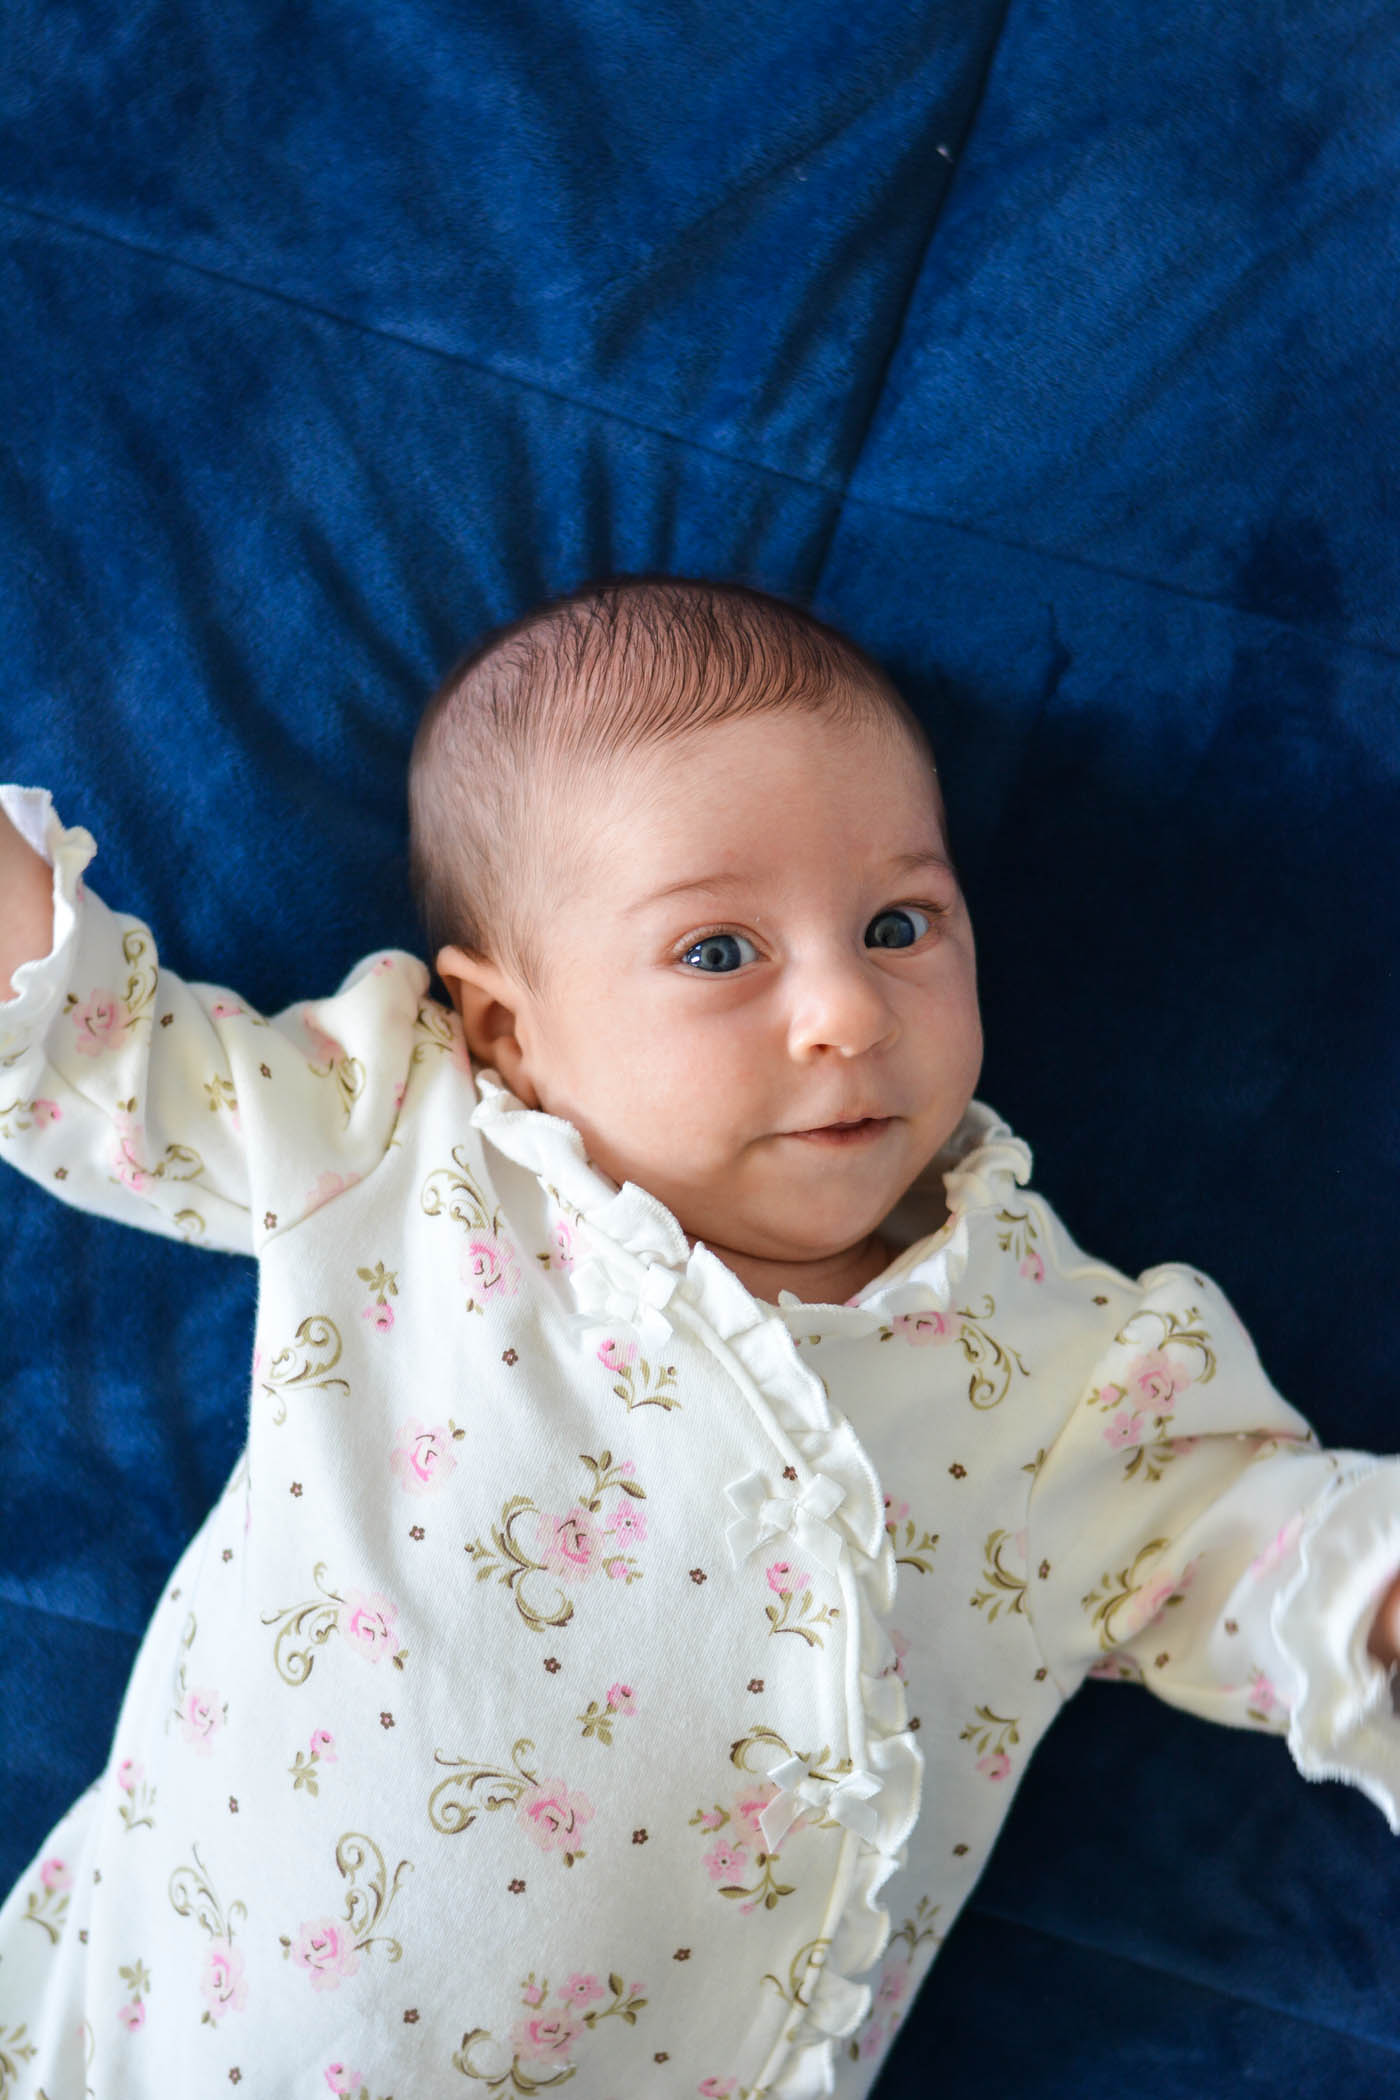 This is a picture of Hadassah lying on a velvety rich blue blanket, looking at the camera with big eyes, waving her arms, and half smiling. She's wearing a white sleeper with pink flowers on it.